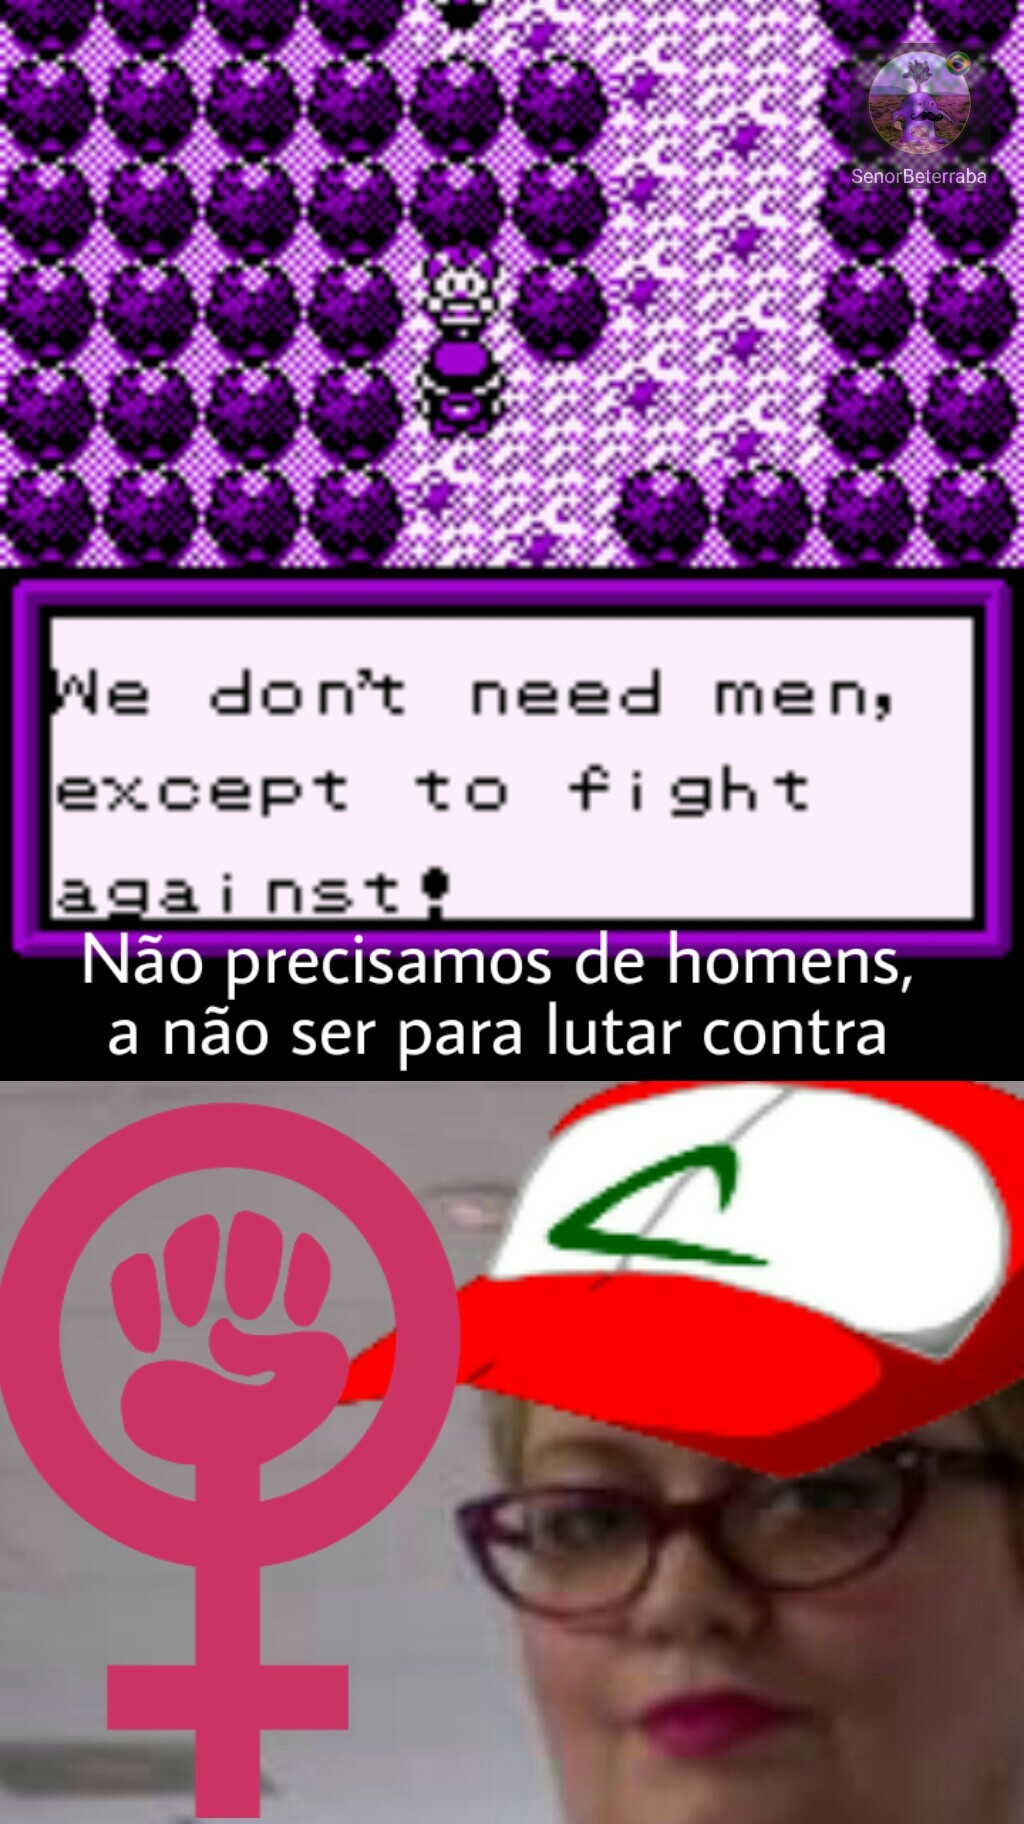 POKÉMON EMPODERAMENTO VERSION - meme